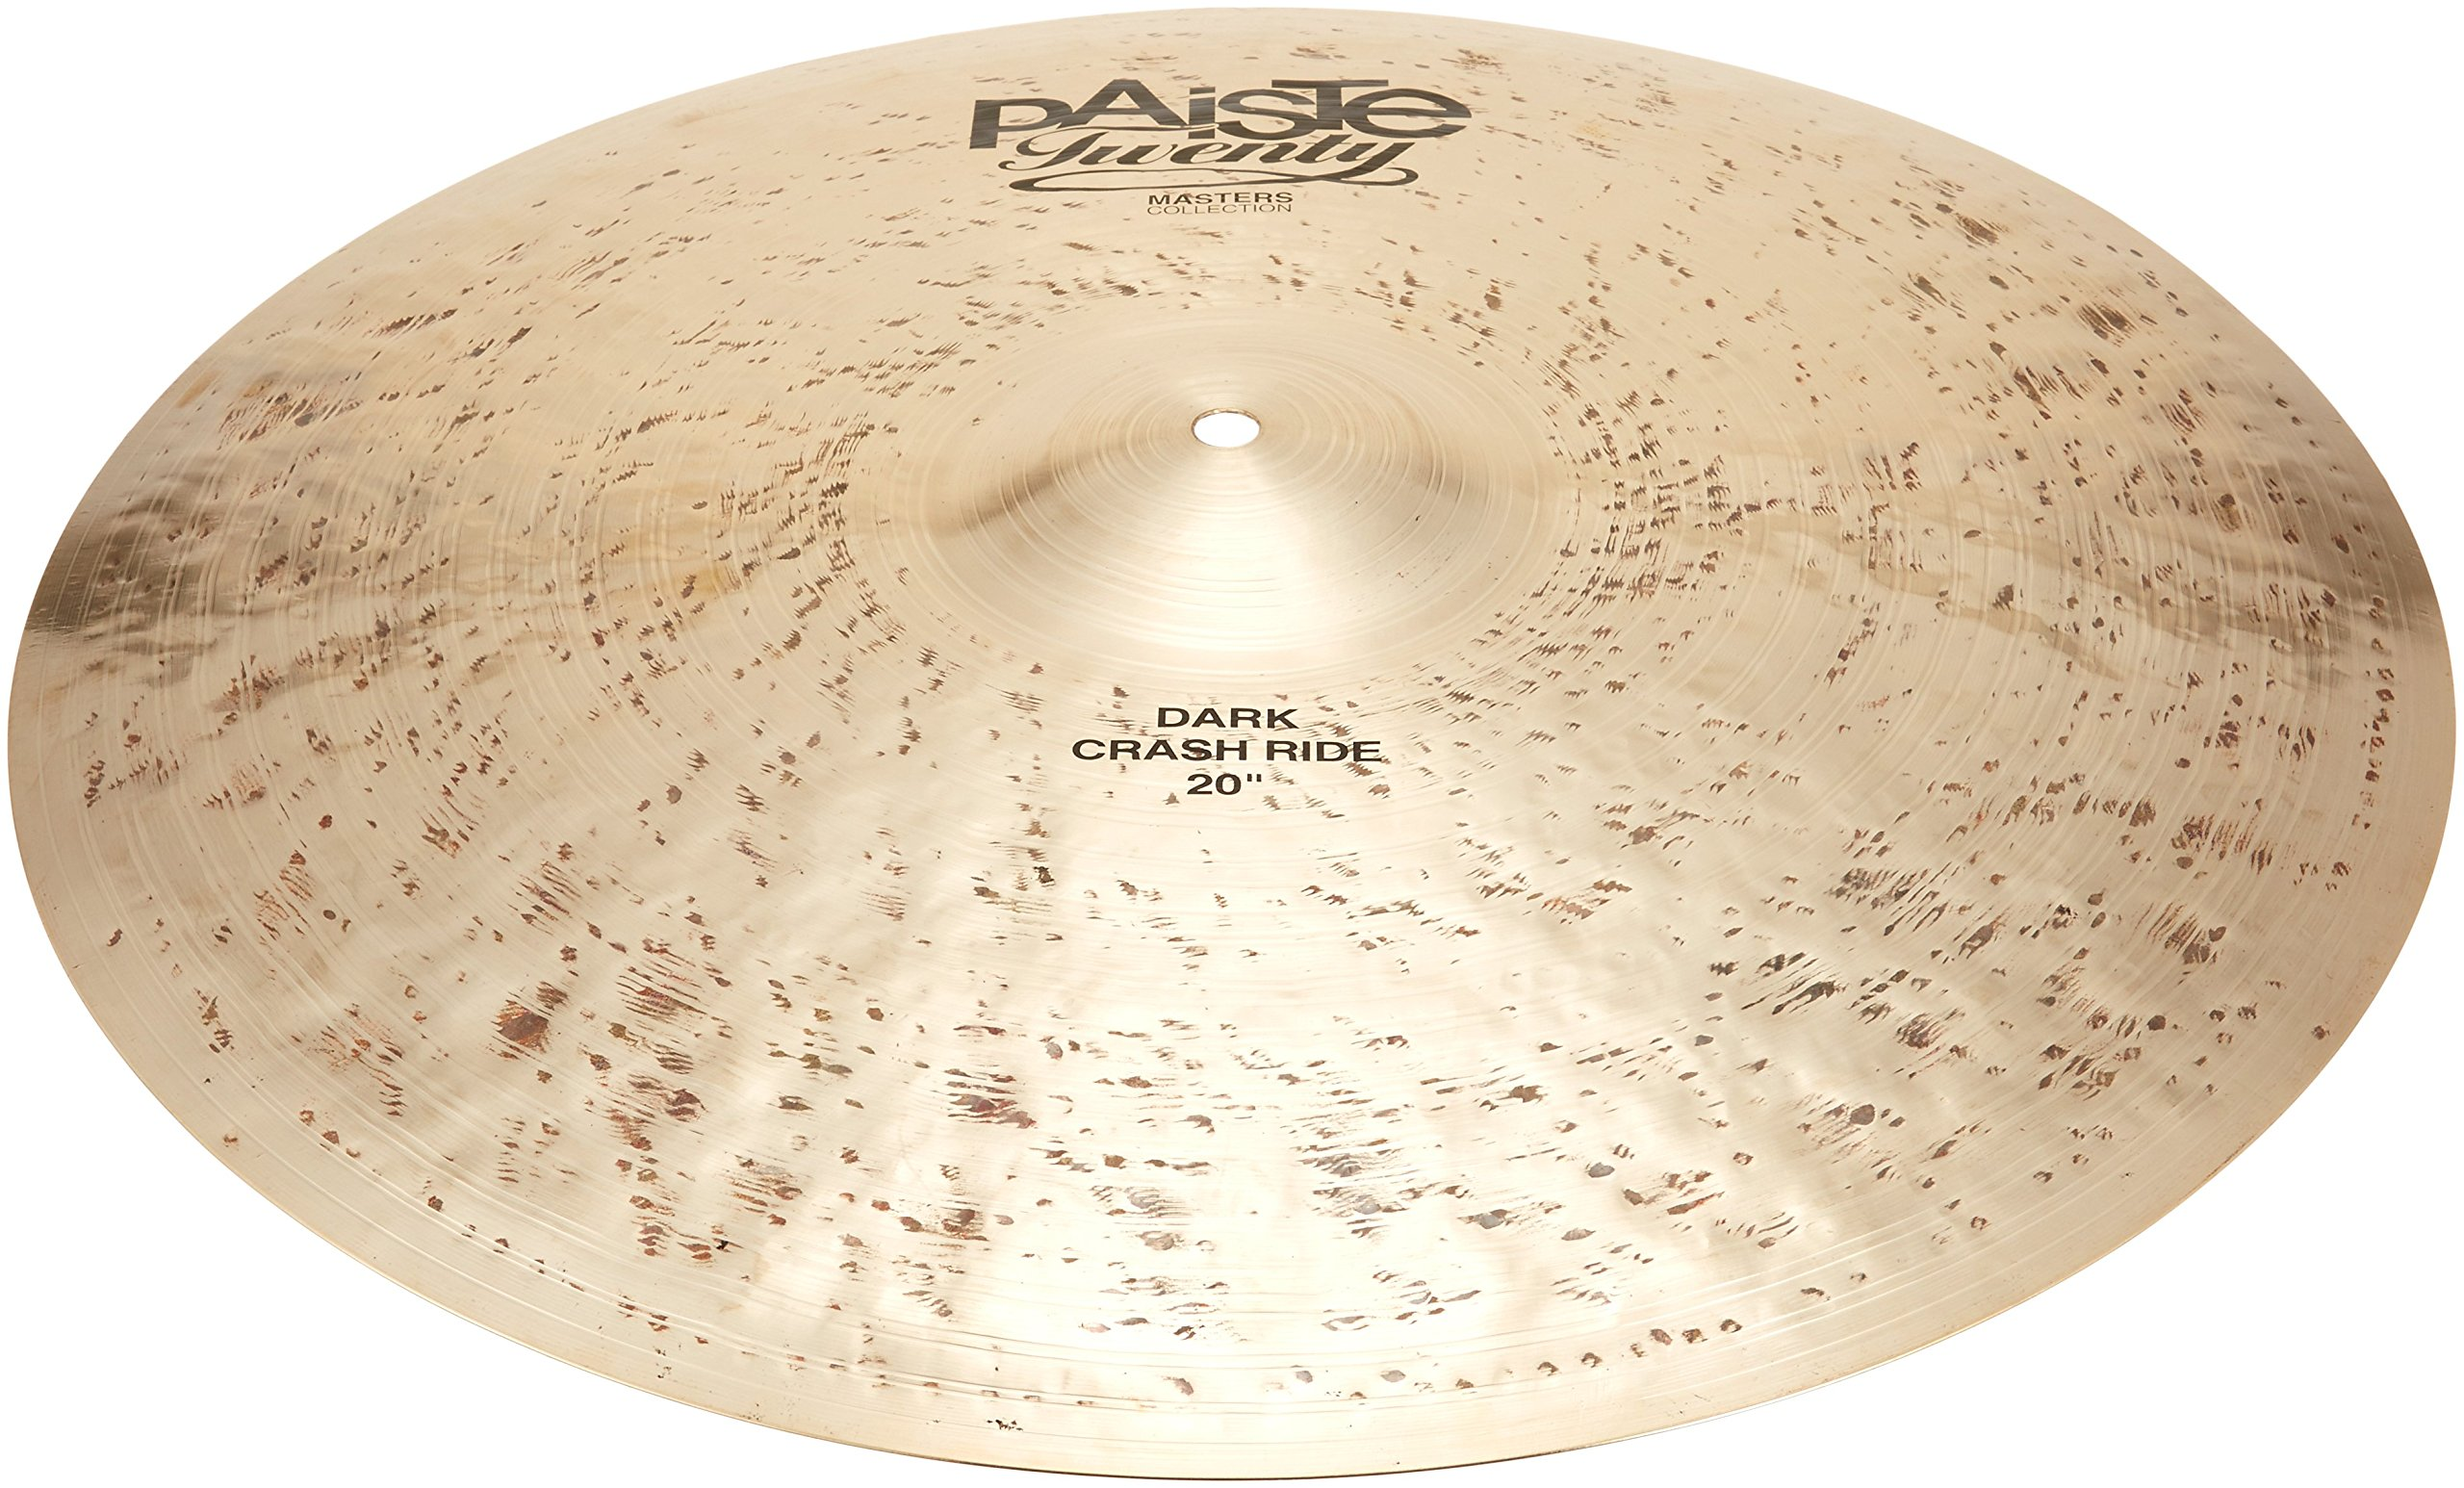 Paiste Masters Series 20'' Dark Crash Ride by Paiste